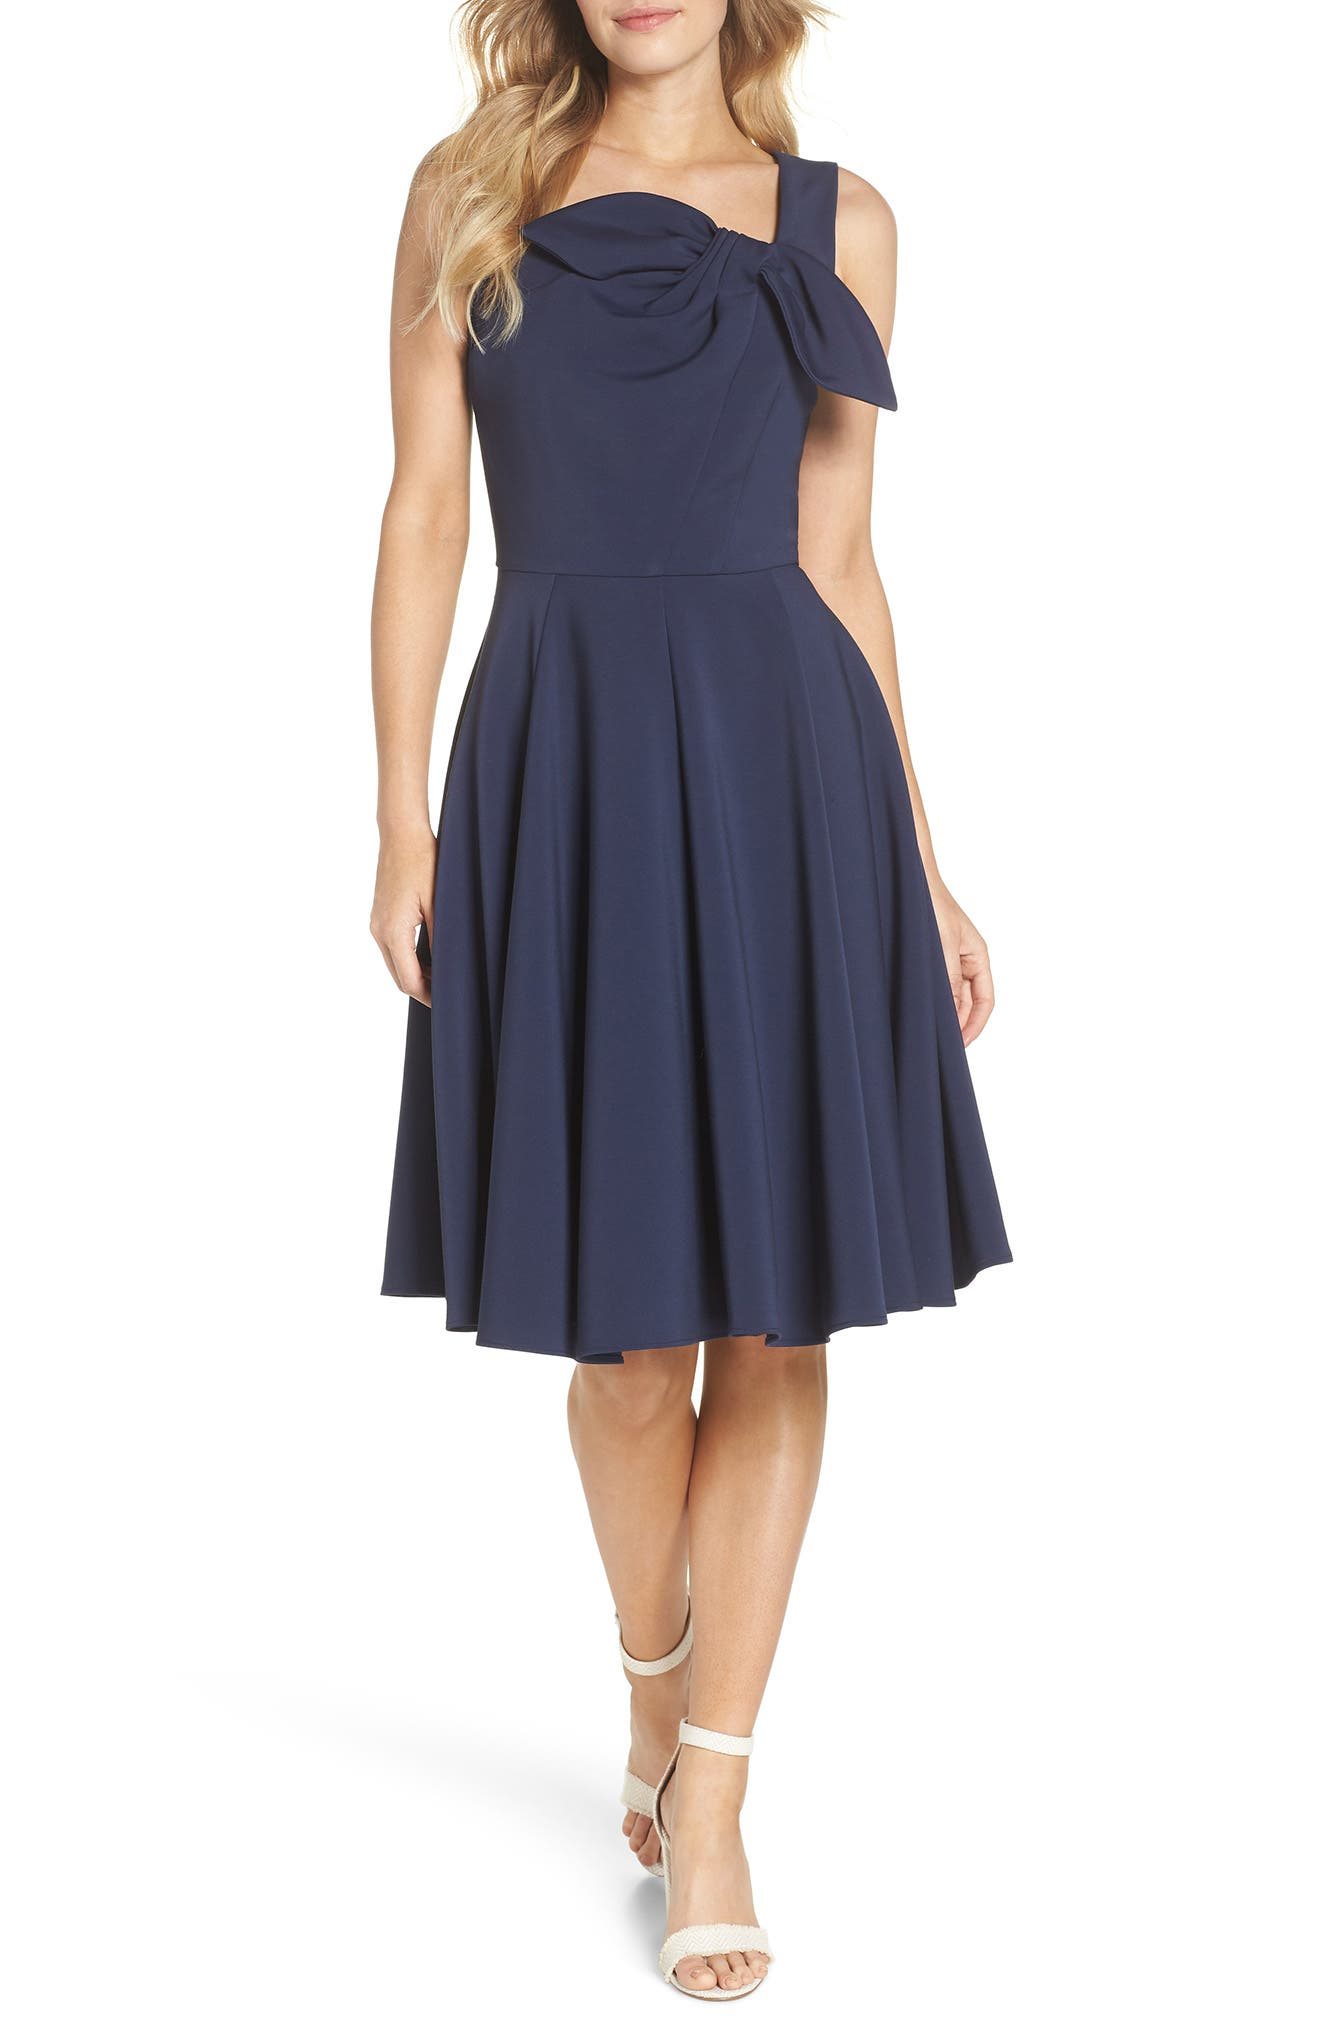 Zoe Bow Neckline Fit & Flare Dress,                             Main thumbnail 1, color,                             MIDNIGHT BLUE